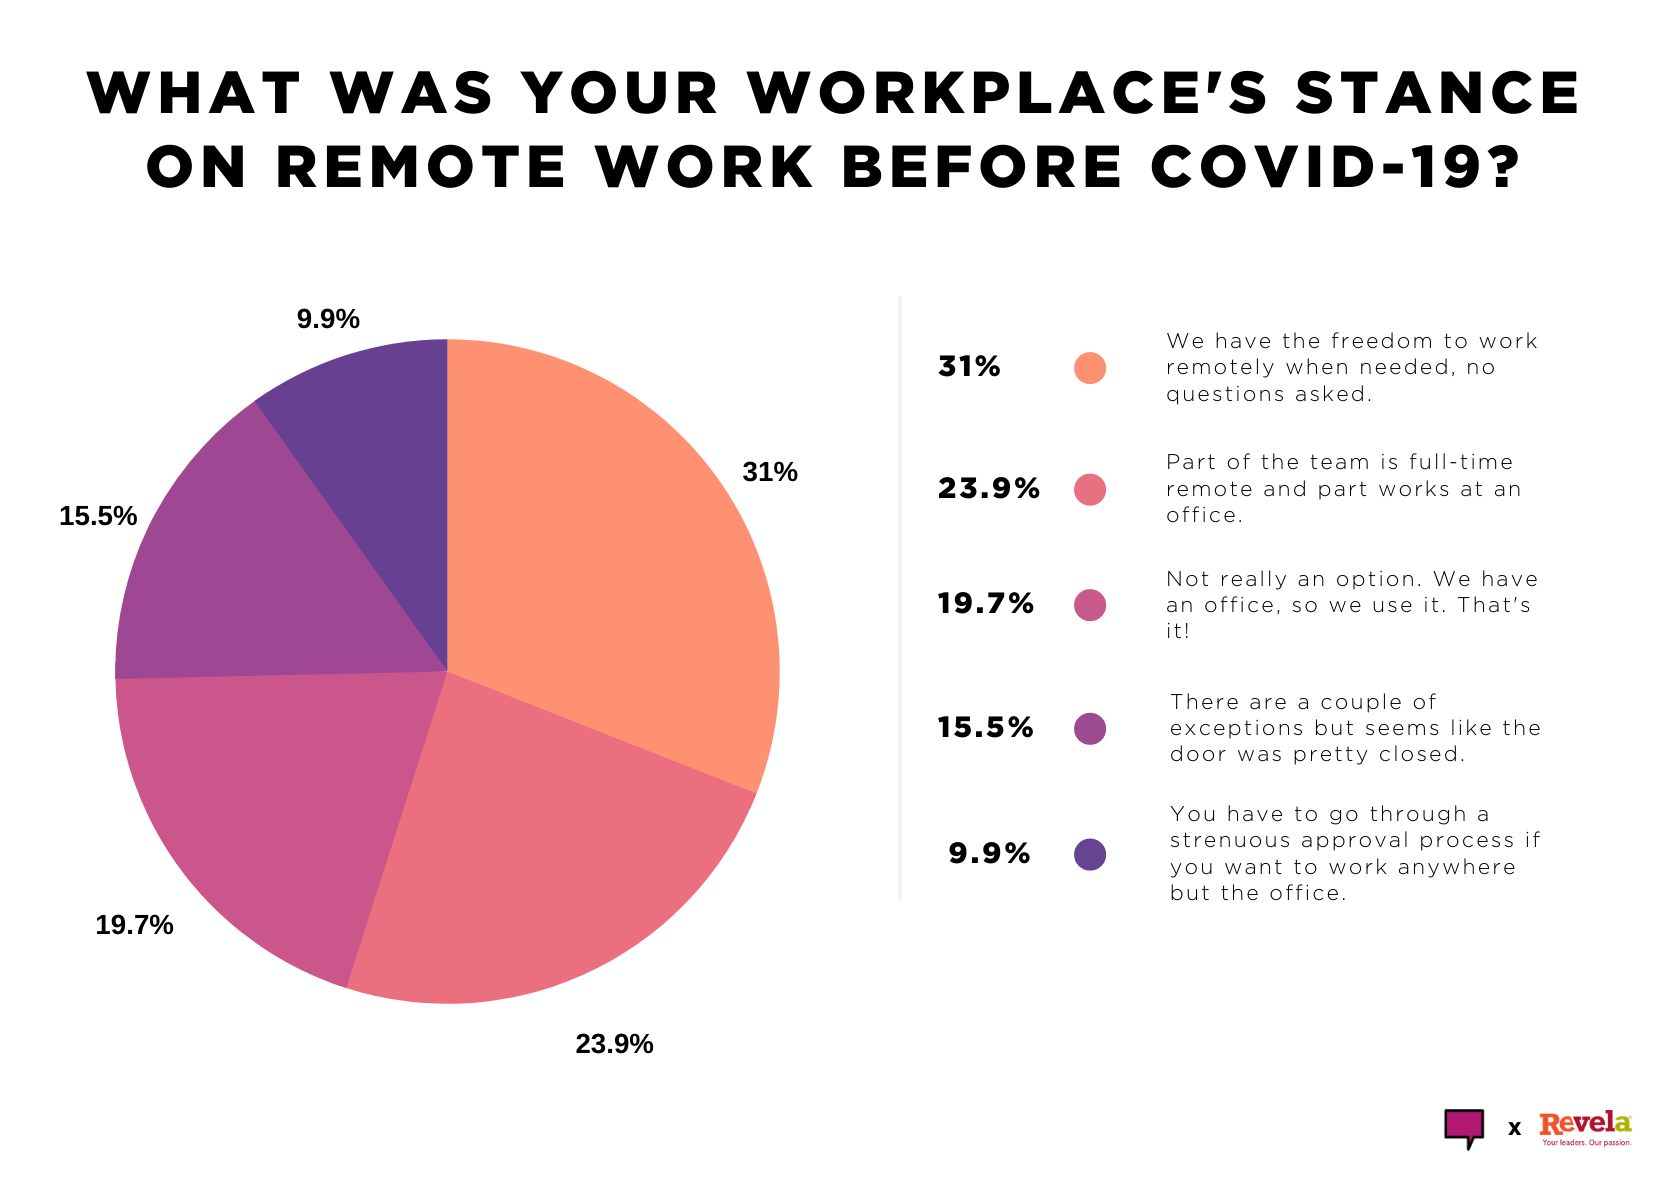 What was your workplace's stance on remote before COVID-19?